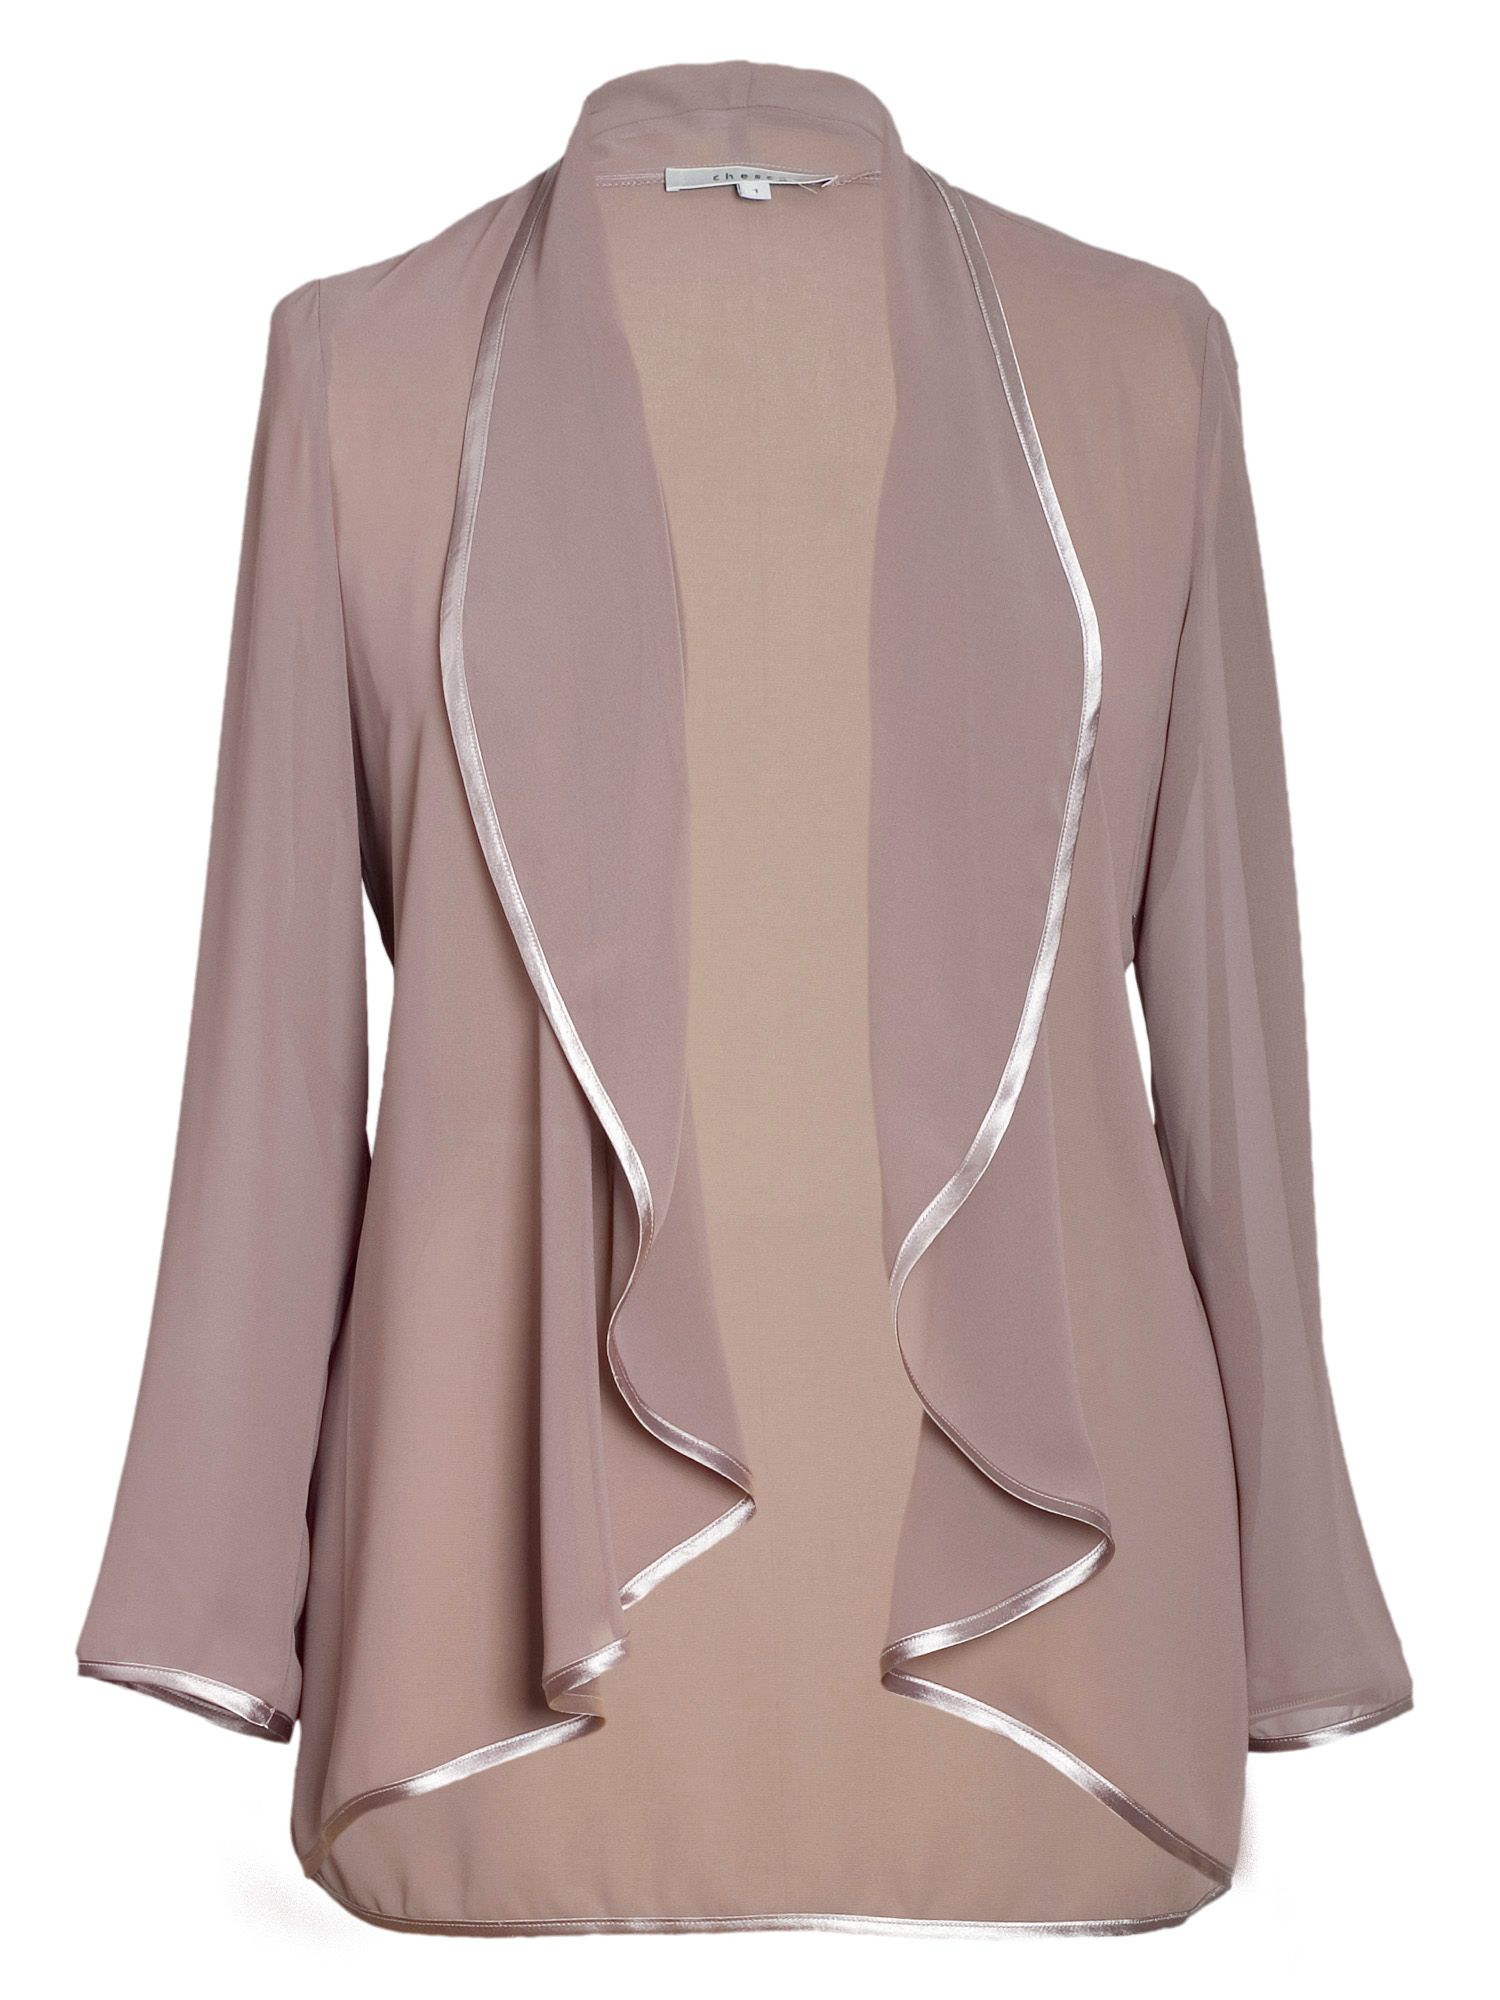 Satin trim chiffon jacket